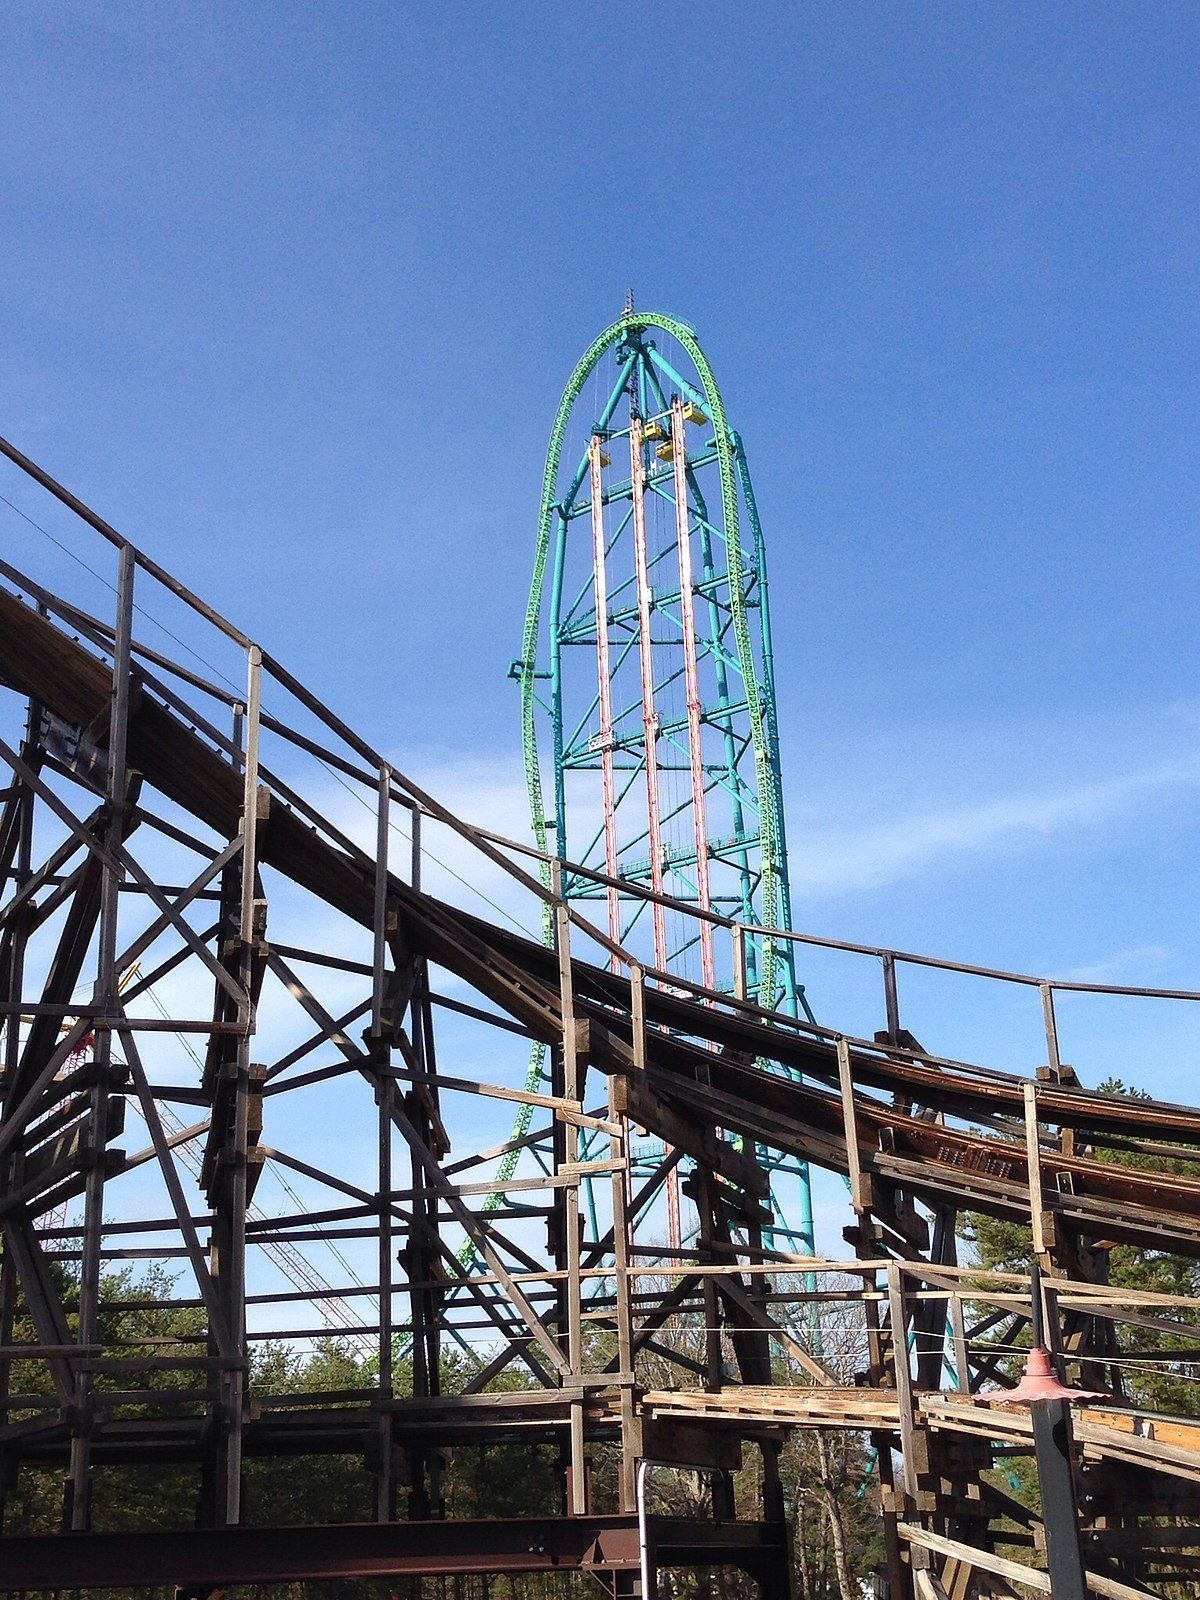 Zumanjaro Drop Of Doom Wikipedia Six Flags Great Adventure Roller Coaster Riders On The Storm